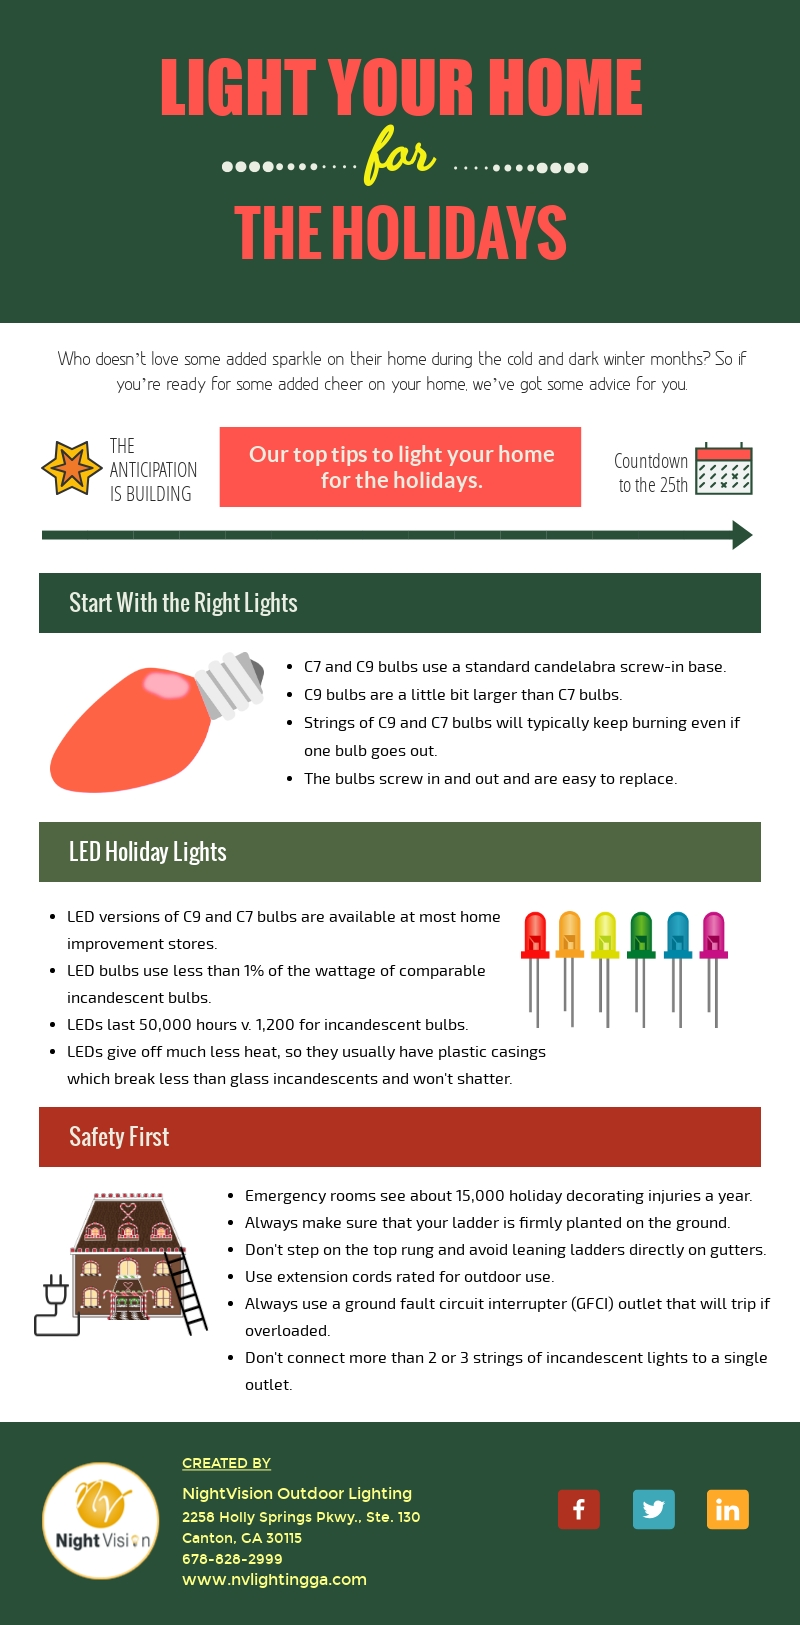 Tips to Light Your Home for the Holidays [infographic]